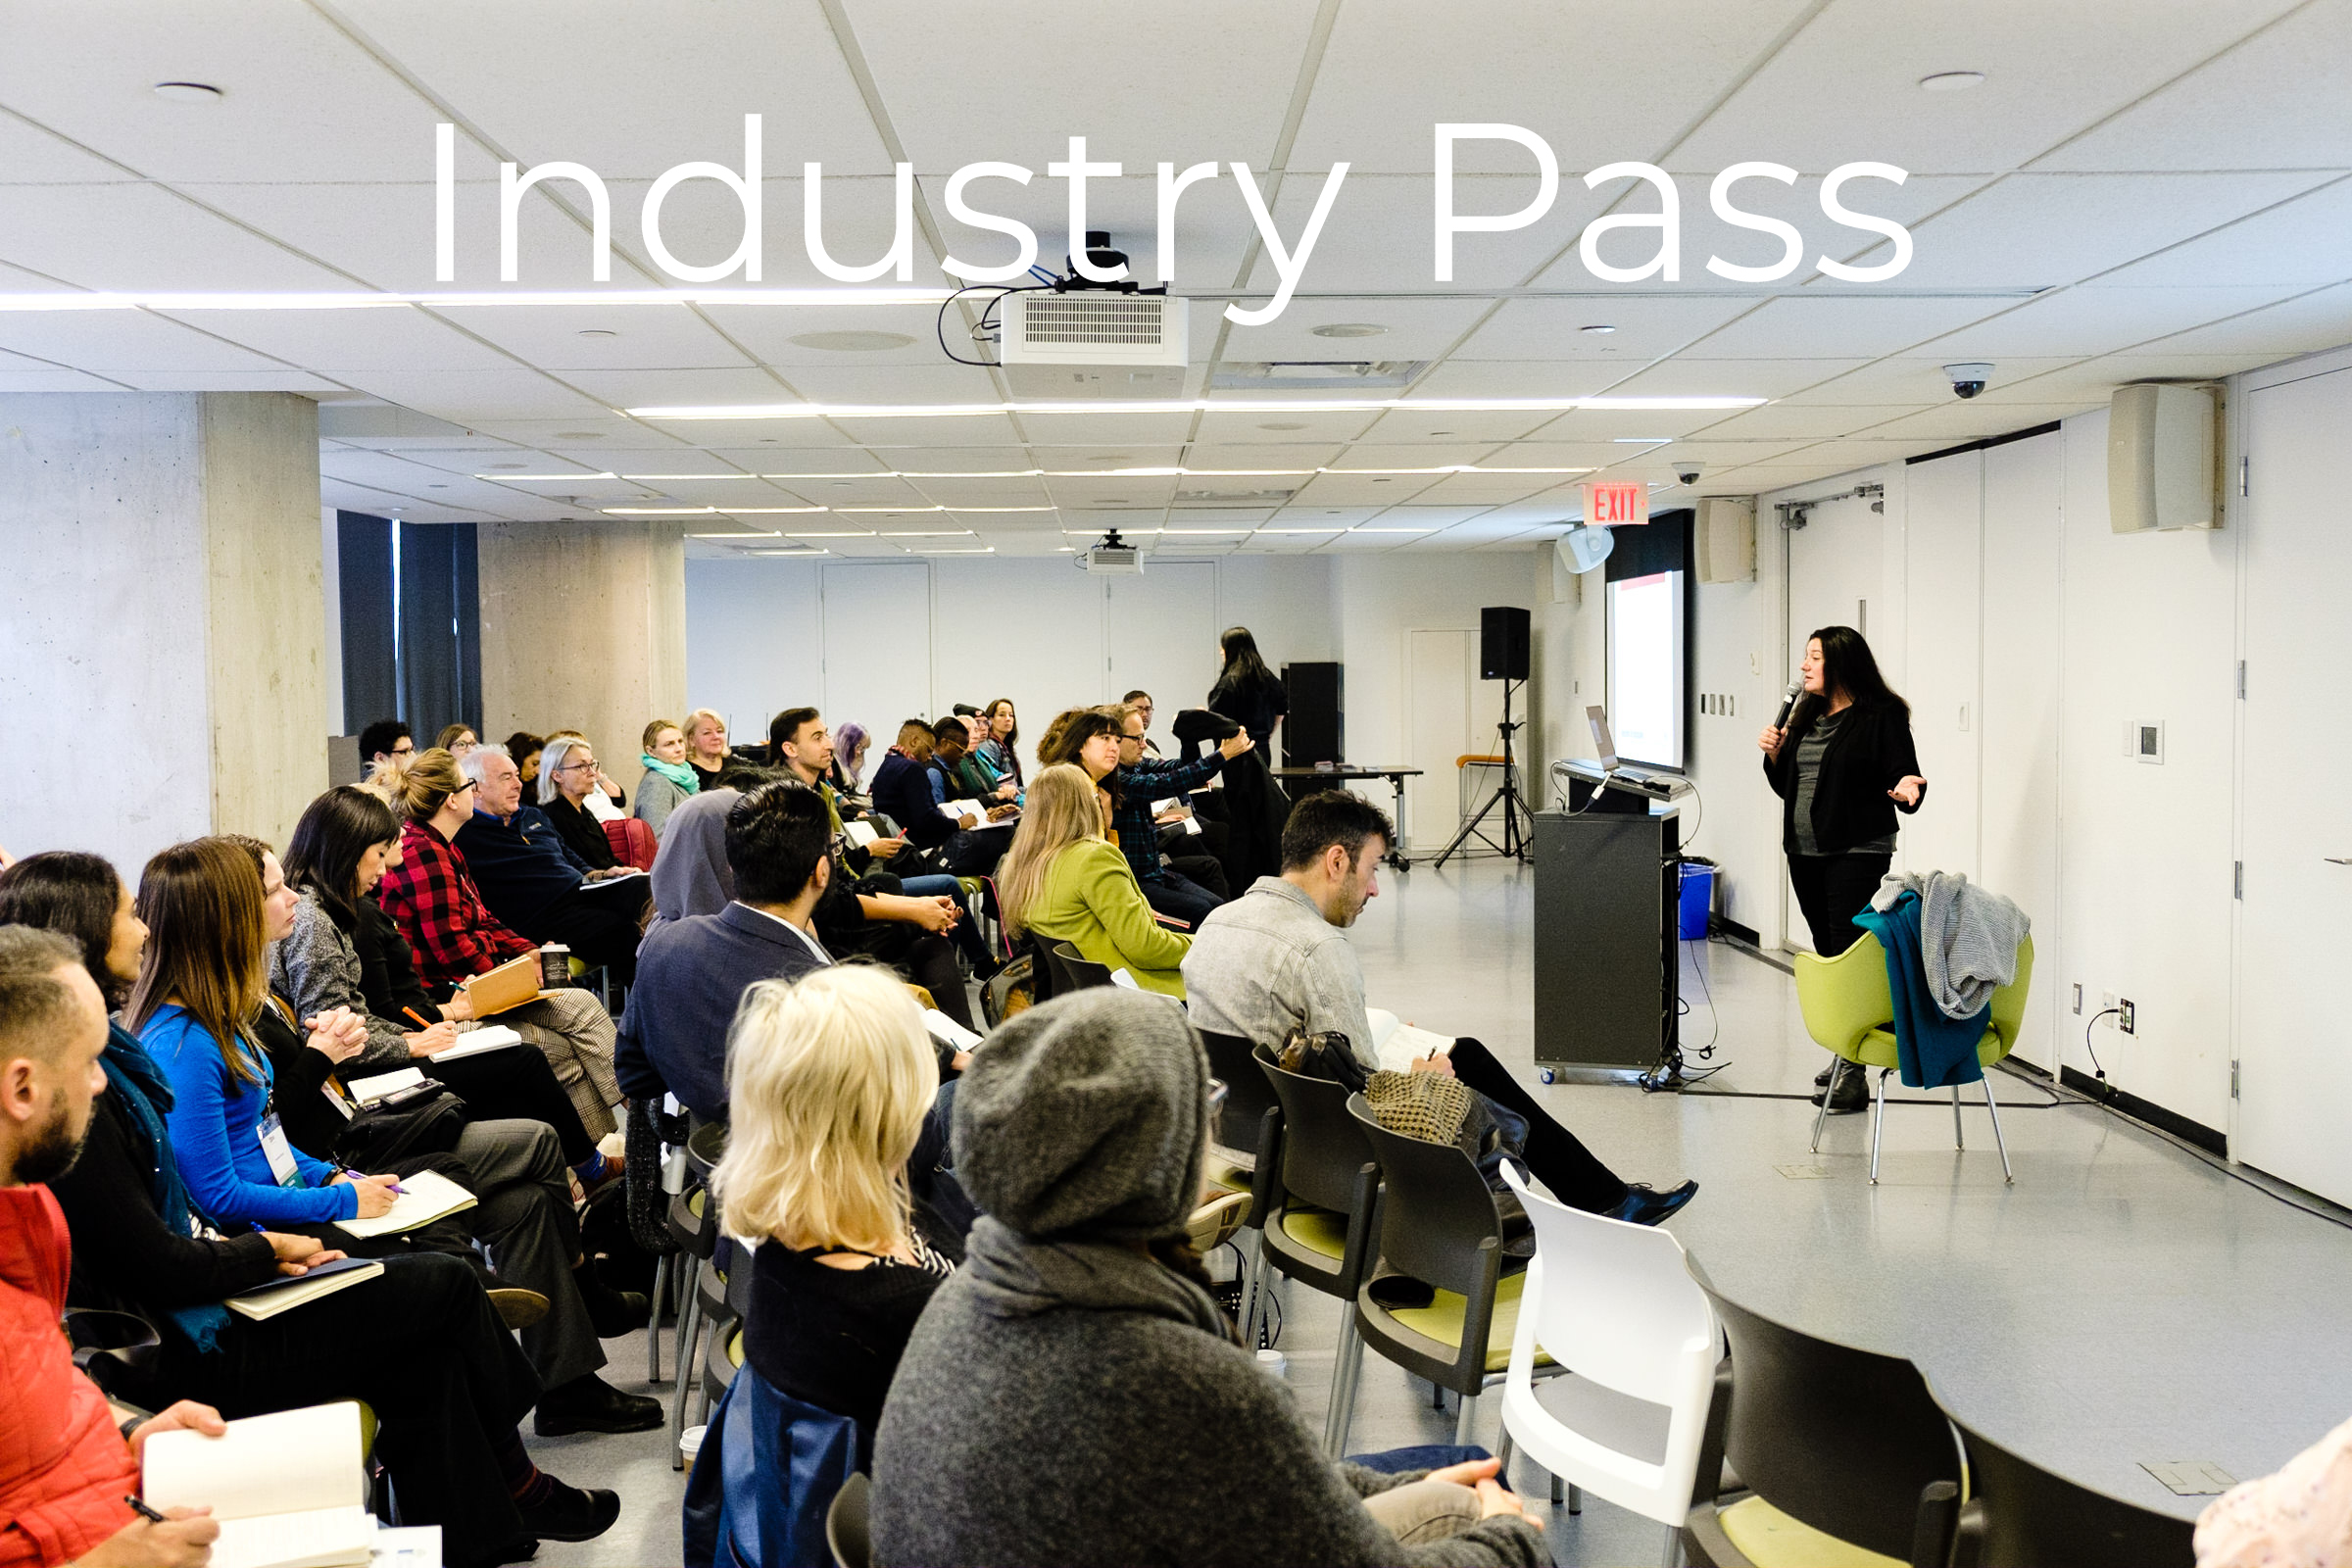 Industry Pass$125 - Great for filmmakers and industry people!Industry Pass gives you access to:· 1 ticket per film screening, including Opening & Closing Night Galas· The Beat music night· 20th Birthday Party· Mediatheque· Industry Micro-Meetings· Industry-only eventsPasses are Not Transferable and tickets are based on availability.